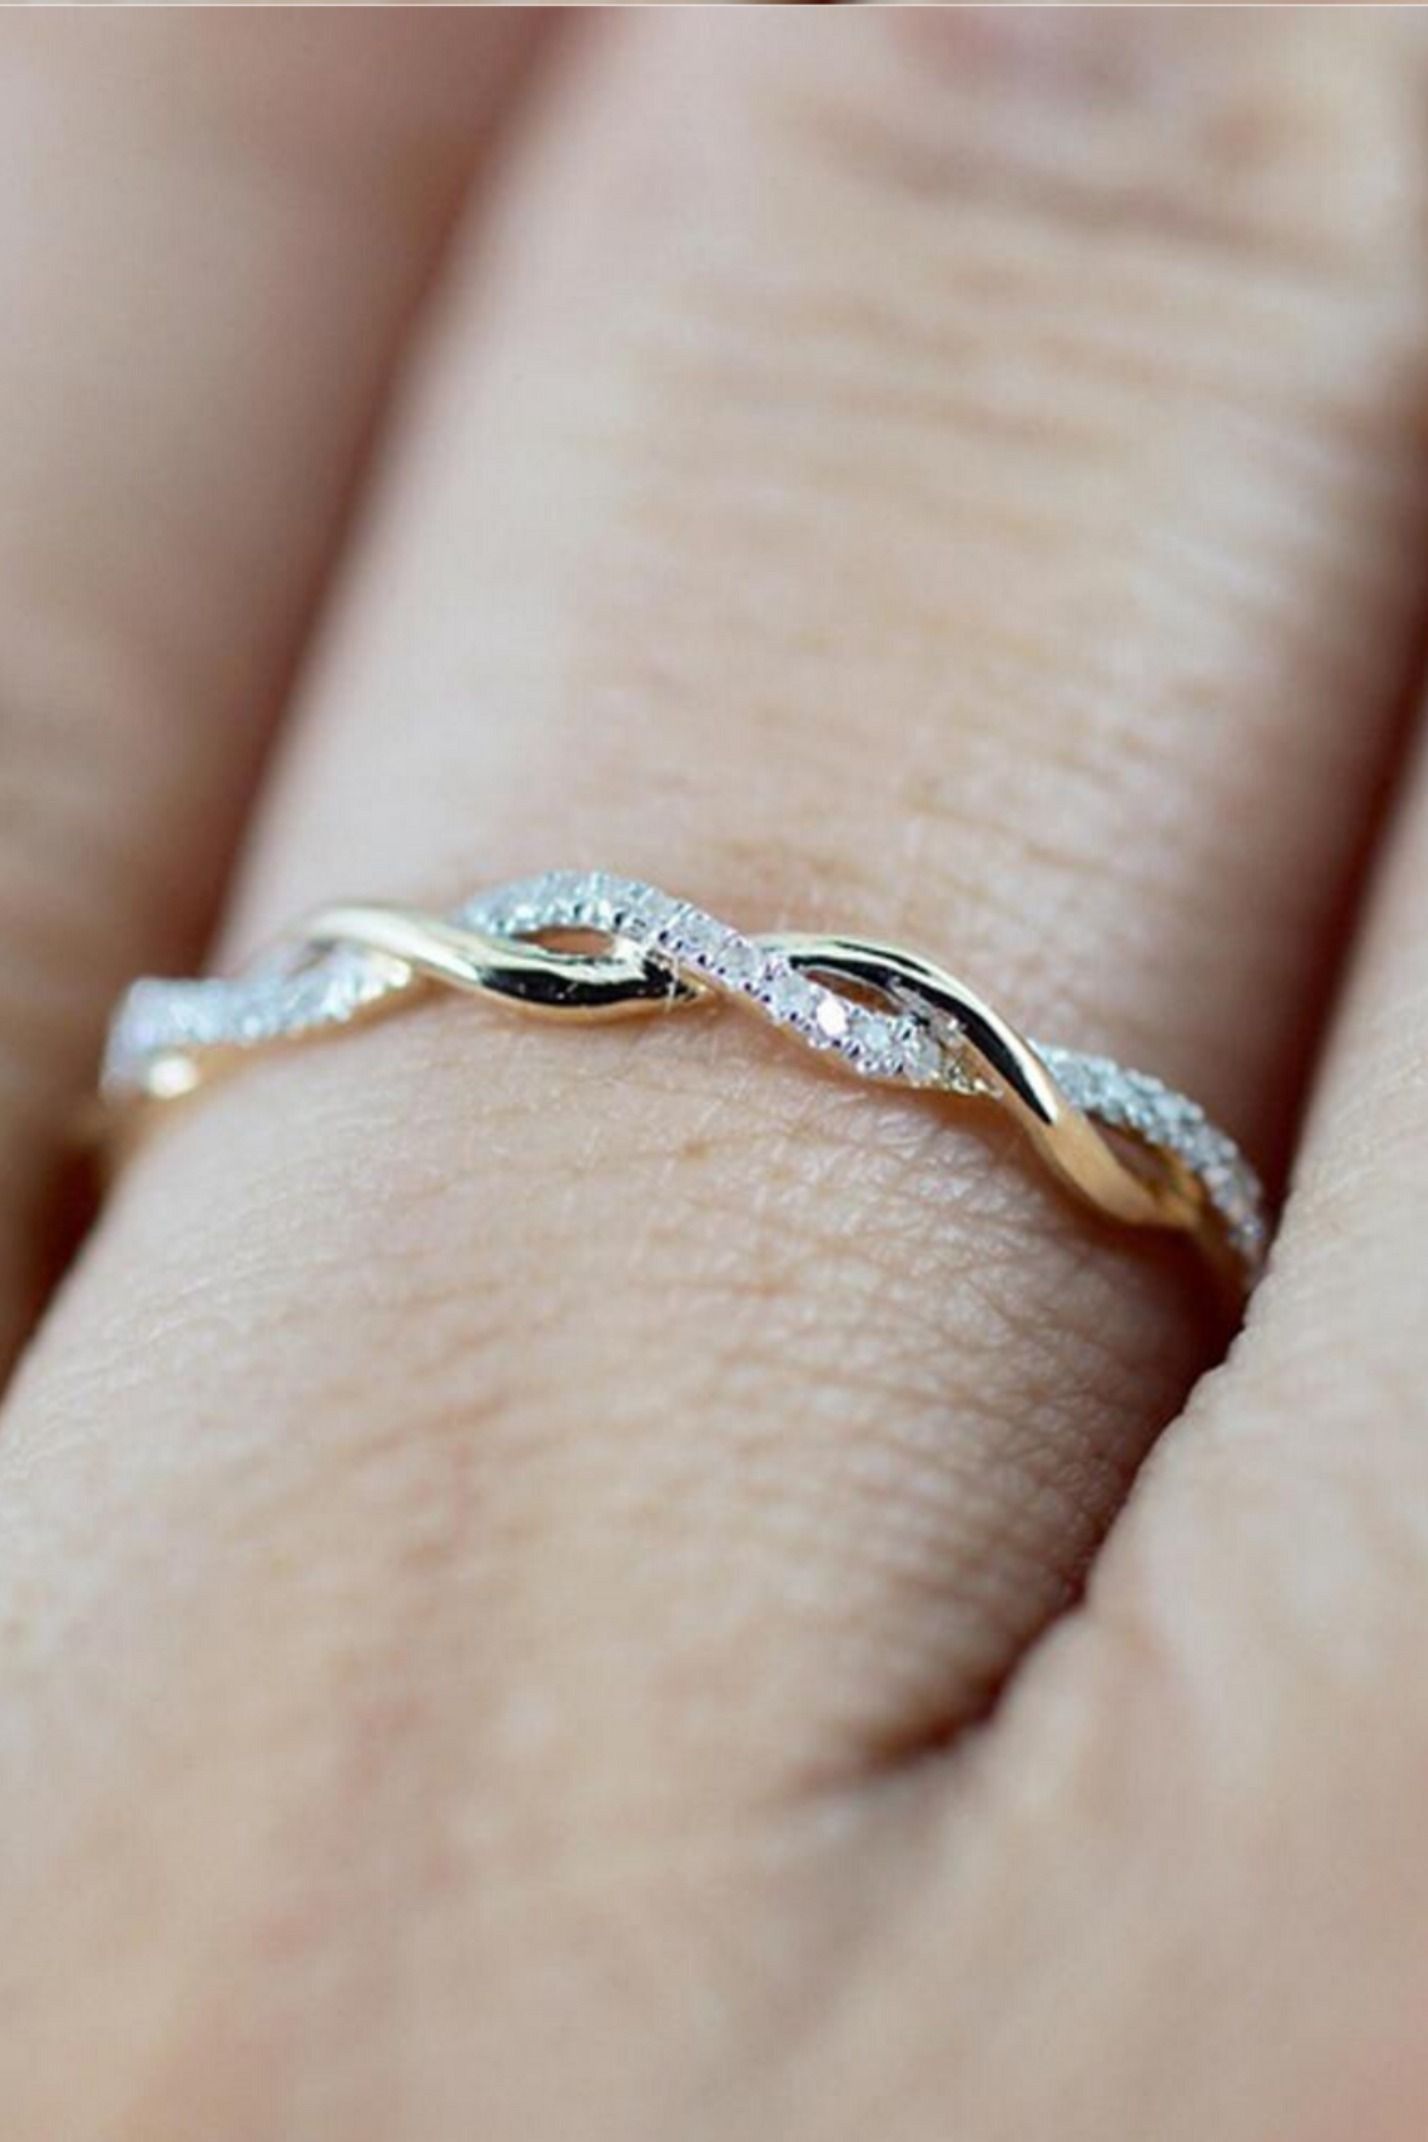 Free Shipping Rings Jewelry Ring Earrings Jewellery Fashion Gold Necklace Love Silver Bracelets Access In 2020 Fashion Rings Gold Color Ring Silver Rings